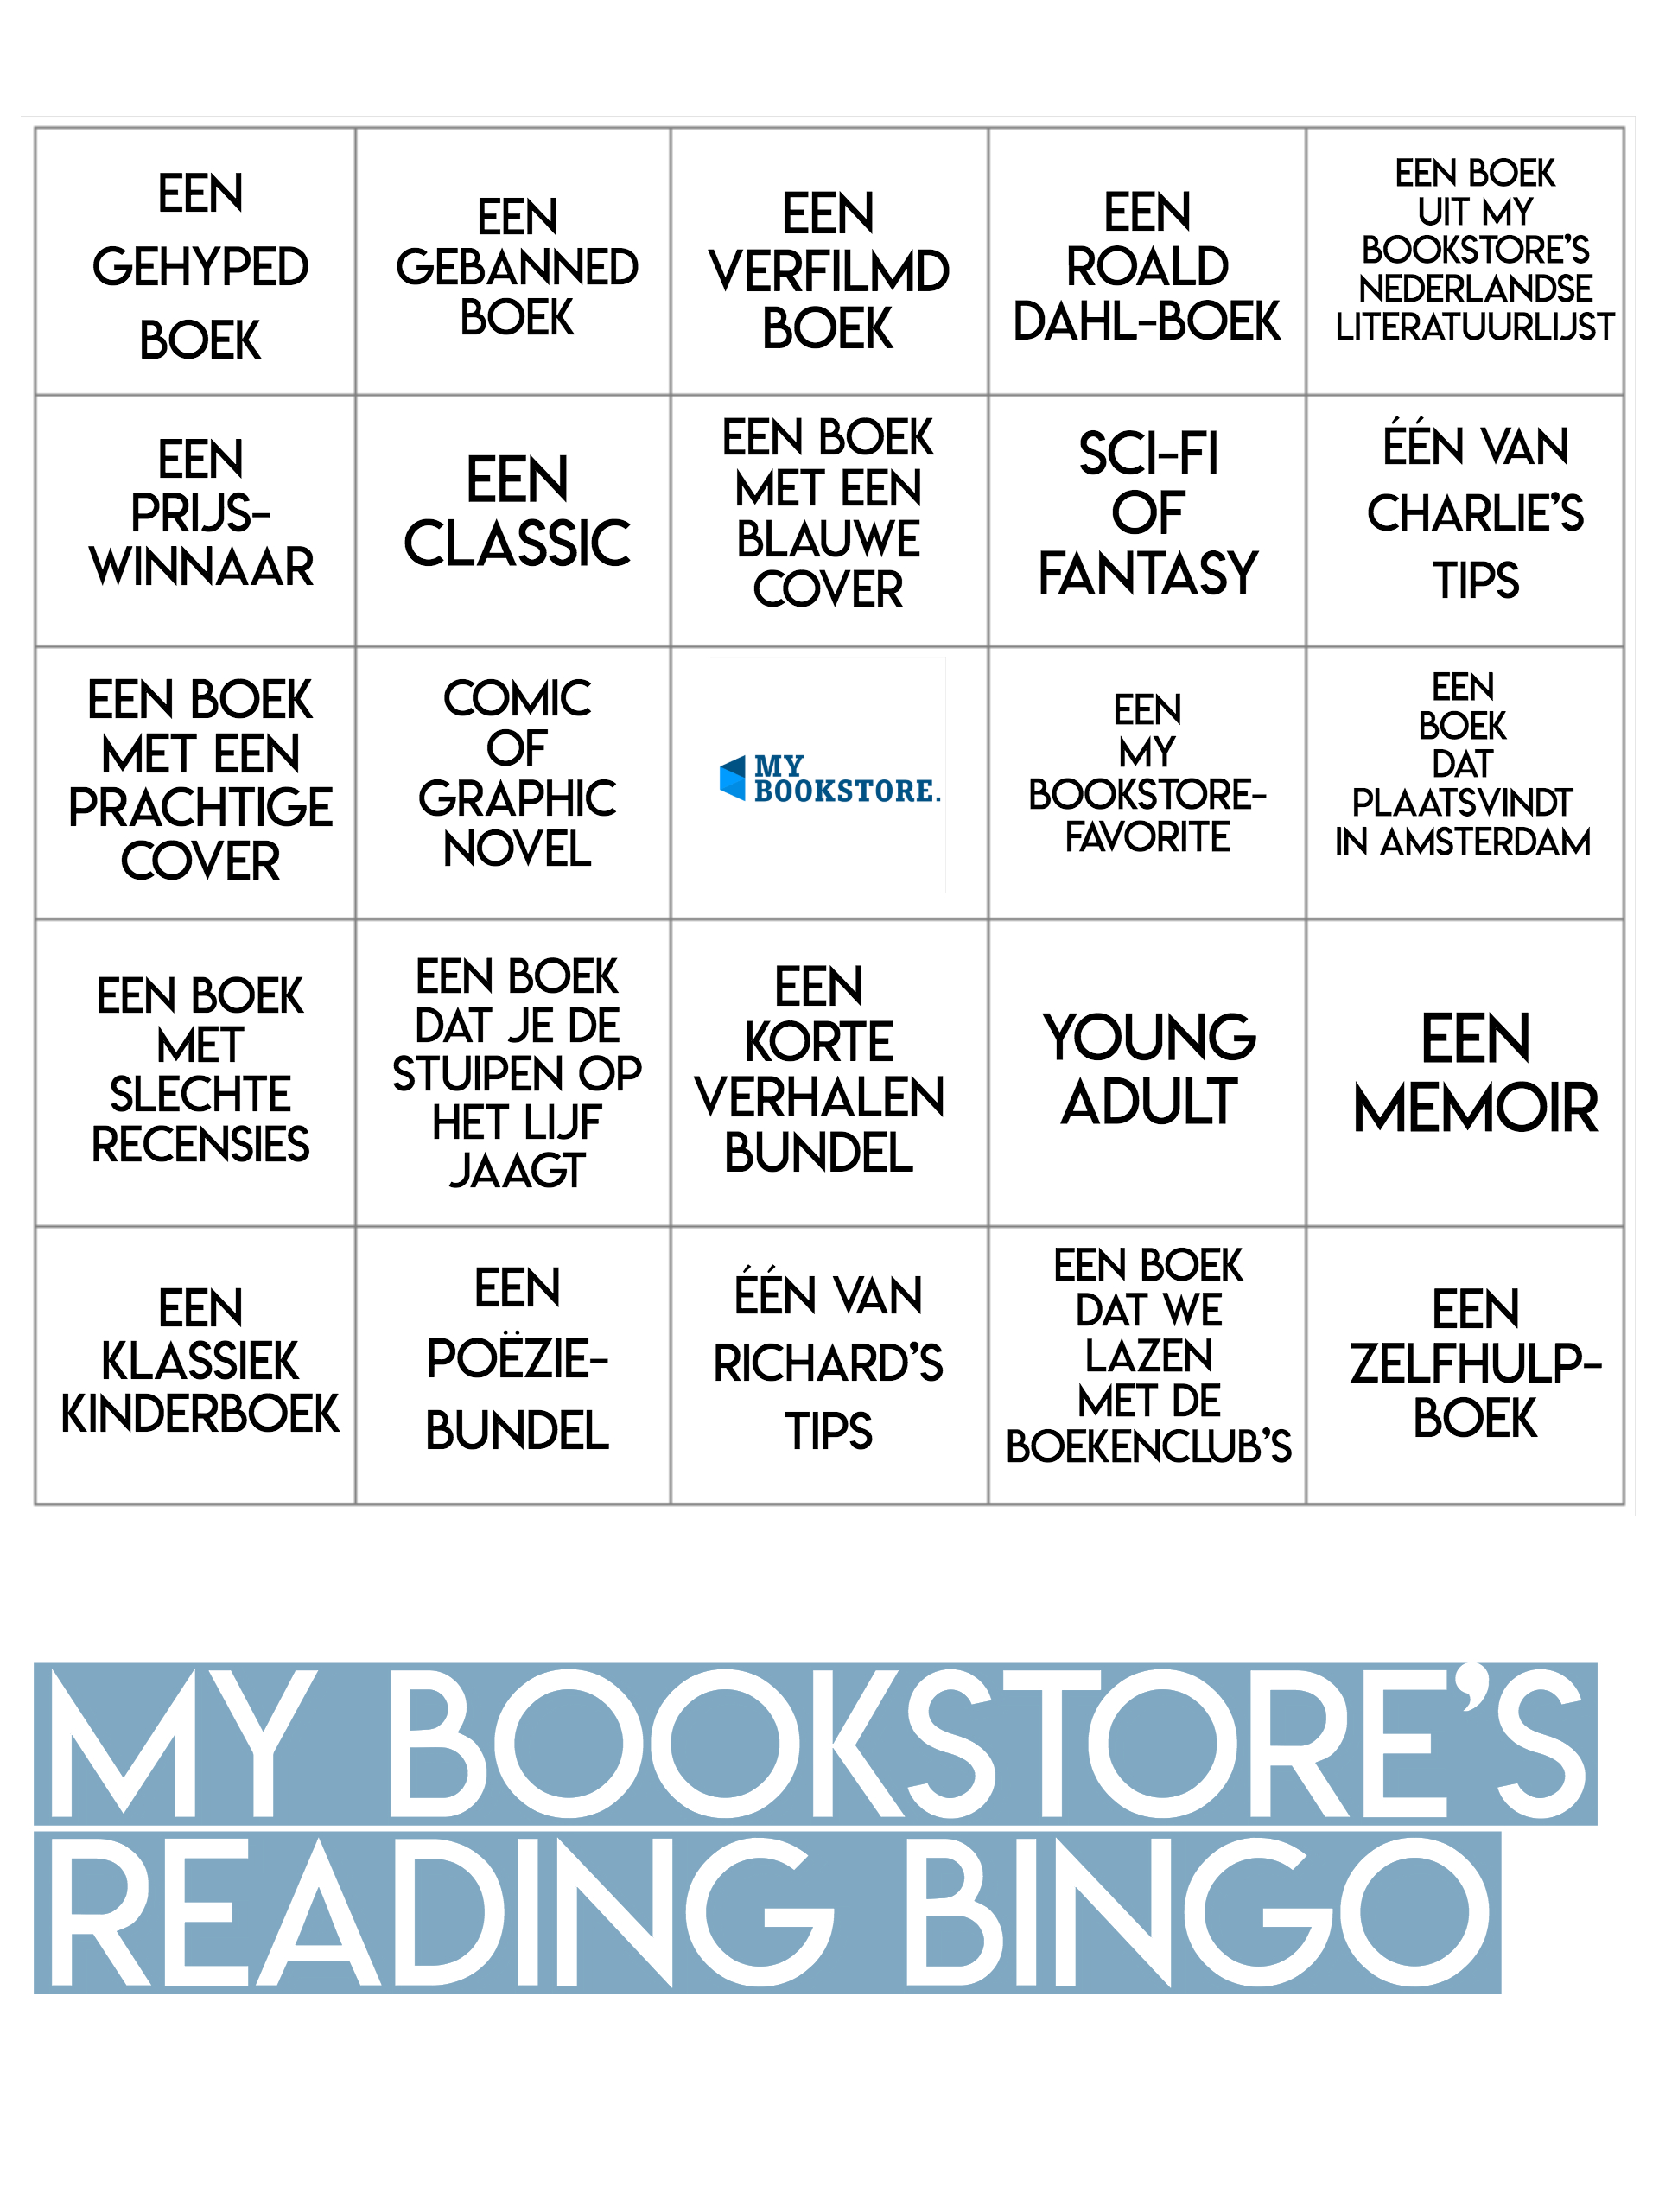 My Bookstore's Reading Bingo